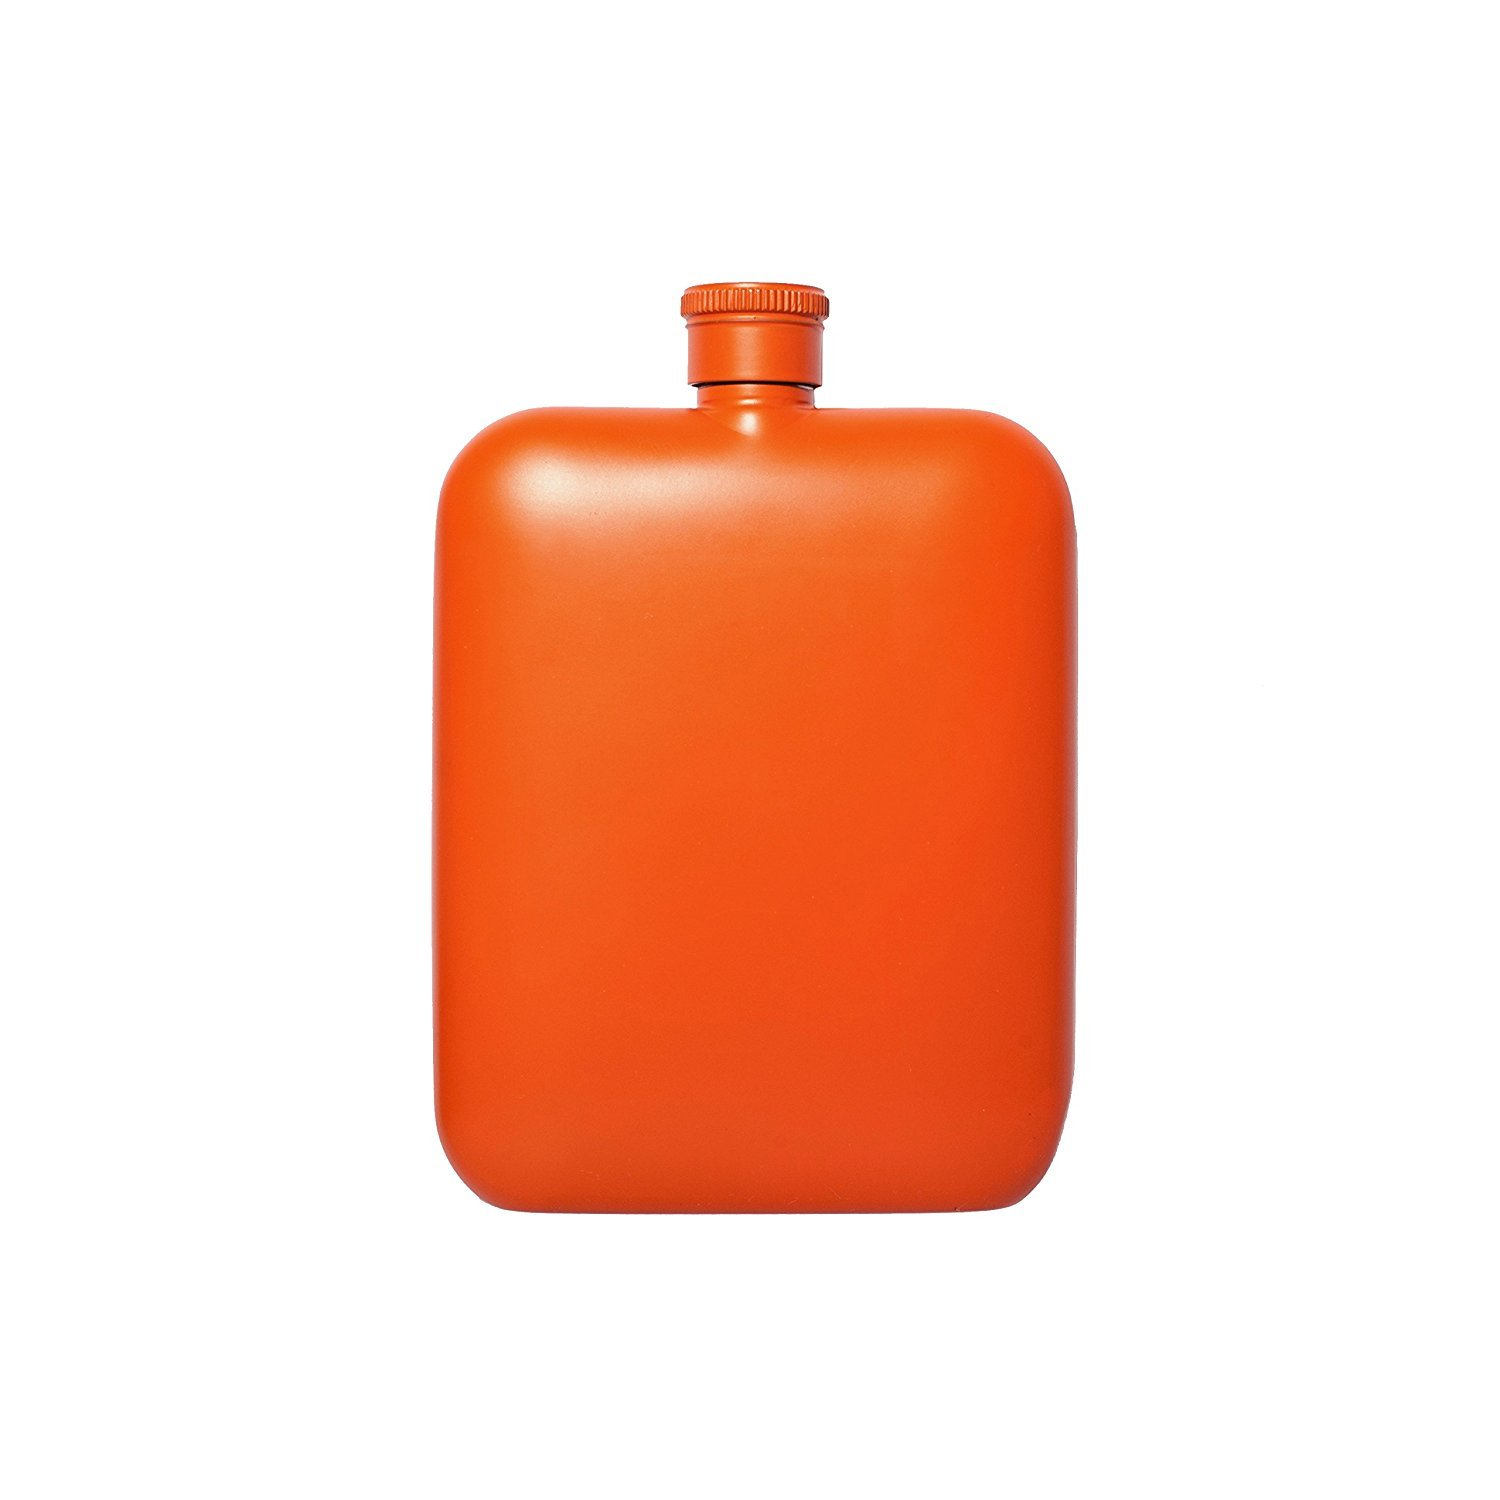 Flask with Canvas Carrier, Orange-34022